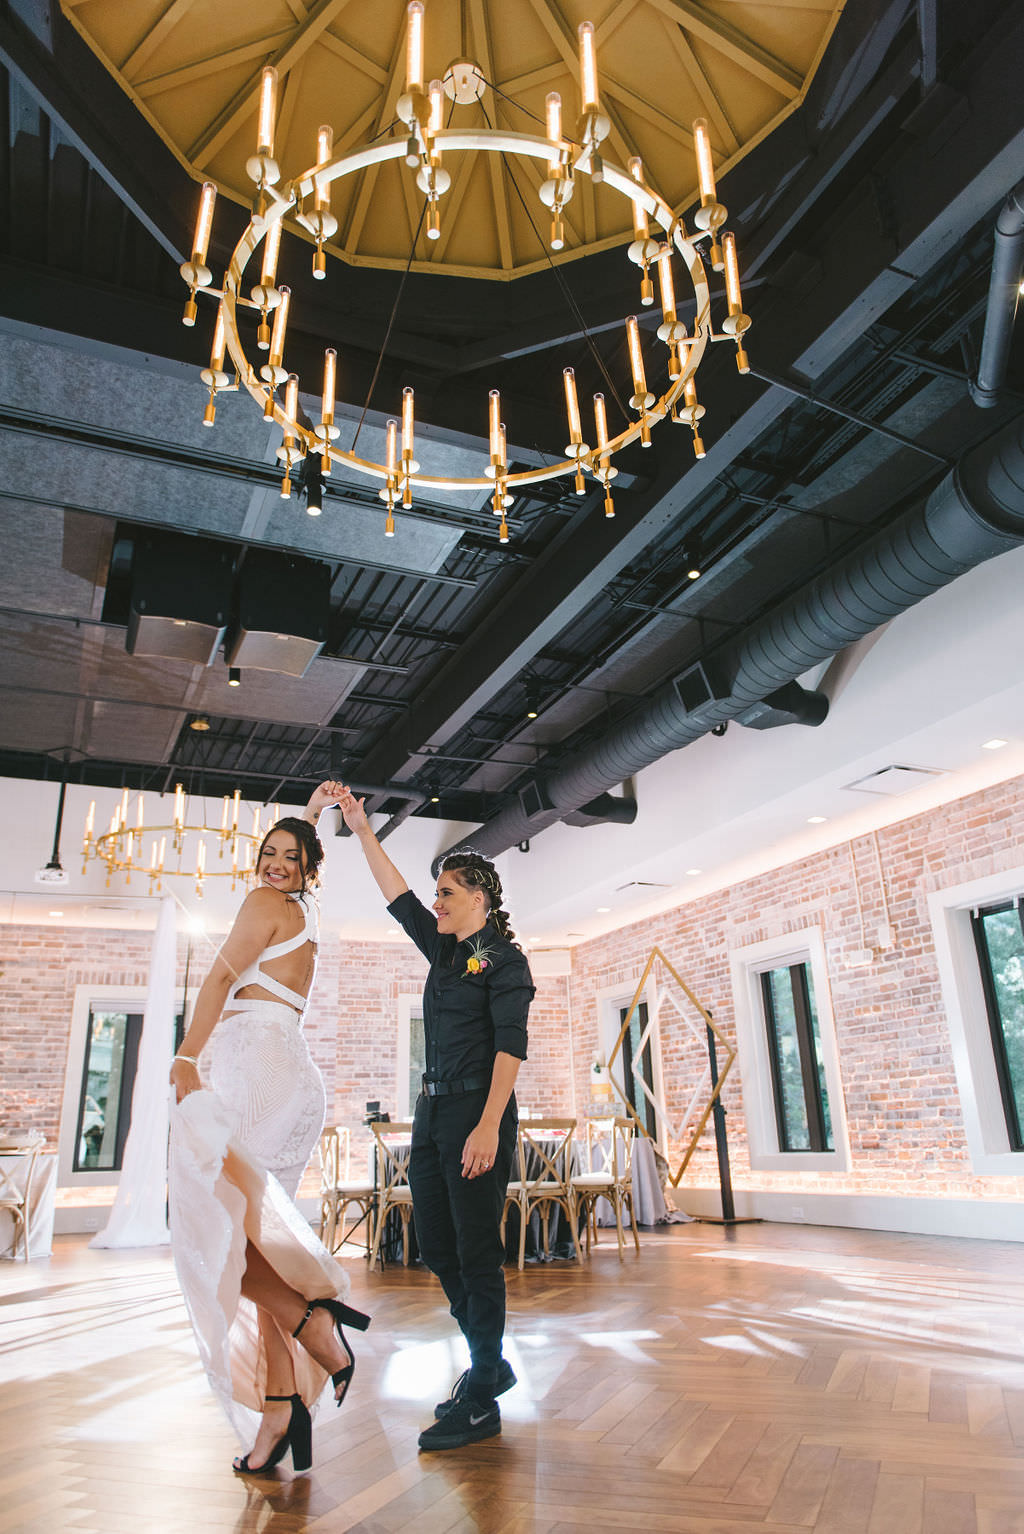 Florida Lesbian Gay Dancing Wedding Portrait in Modern Red Brick Wall Unique Downtown St. Pete Wedding Venue Red Mesa Events   Tampa Bay Wedding Photographer Kera Photography   Sarasota Wedding Dress Shop Truly Forever Bridal